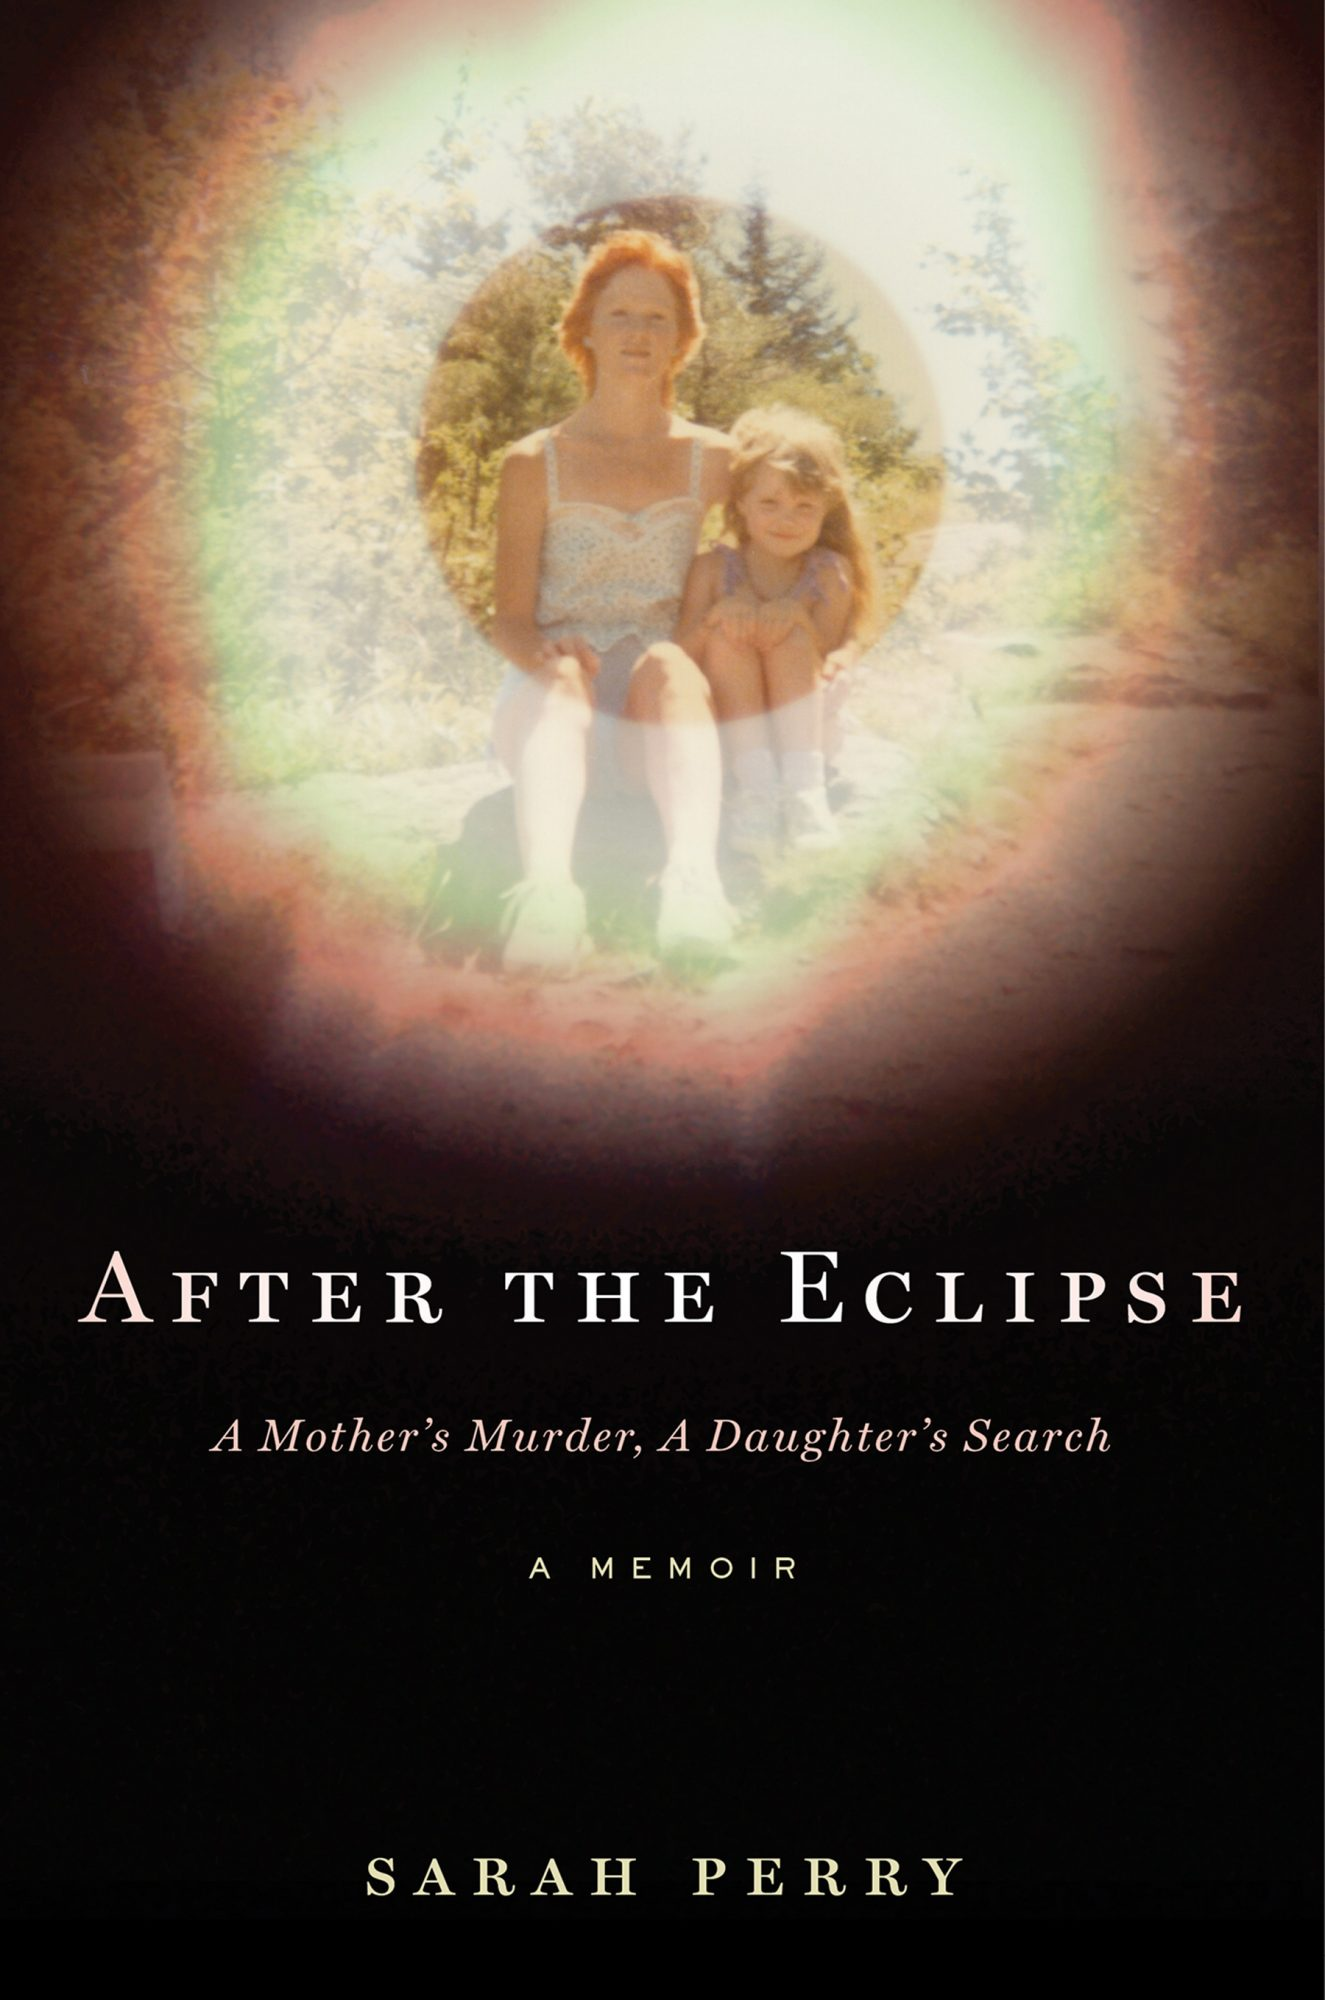 After the Eclipse: A Mother's Murder, a Daughter's Searchby Sarah Perry